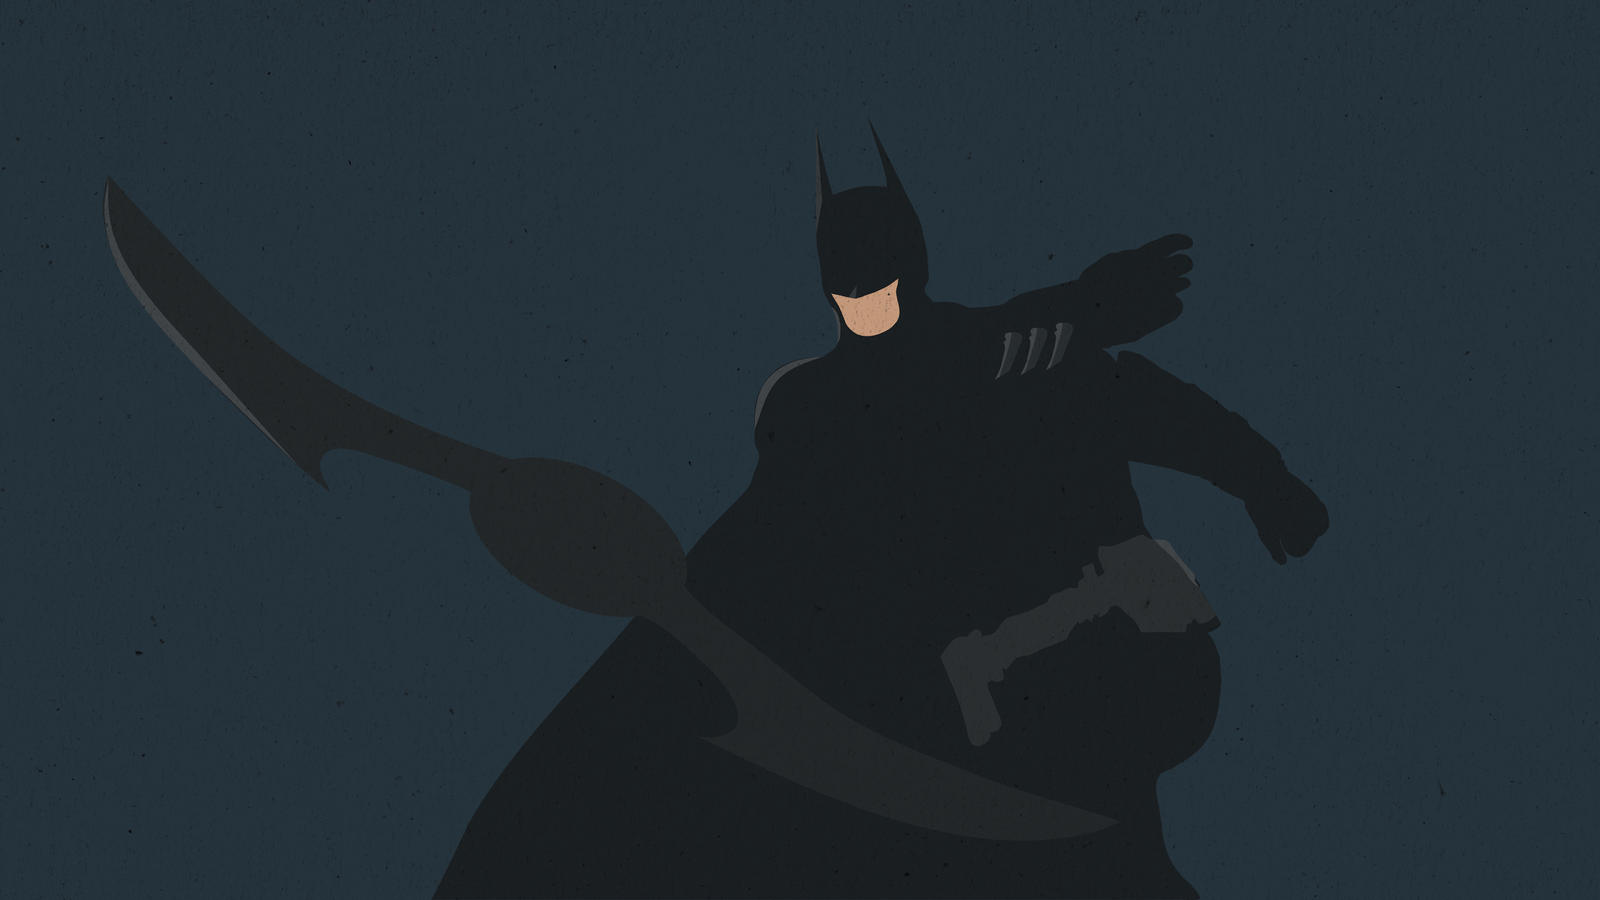 batman minimalist wallpaper download - photo #11